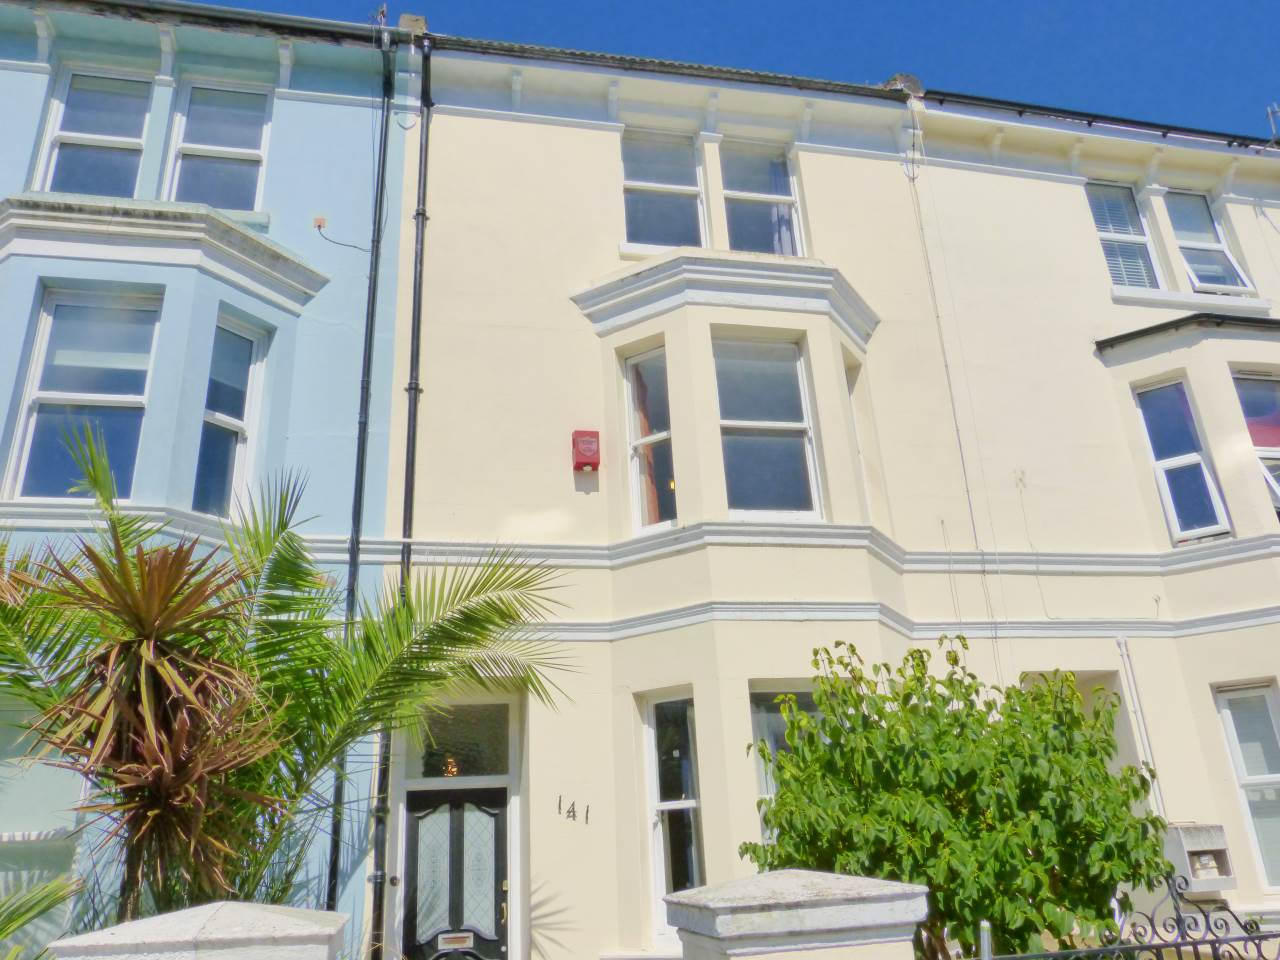 6 bed house to rent in Queen's Park Road, Brighton 0